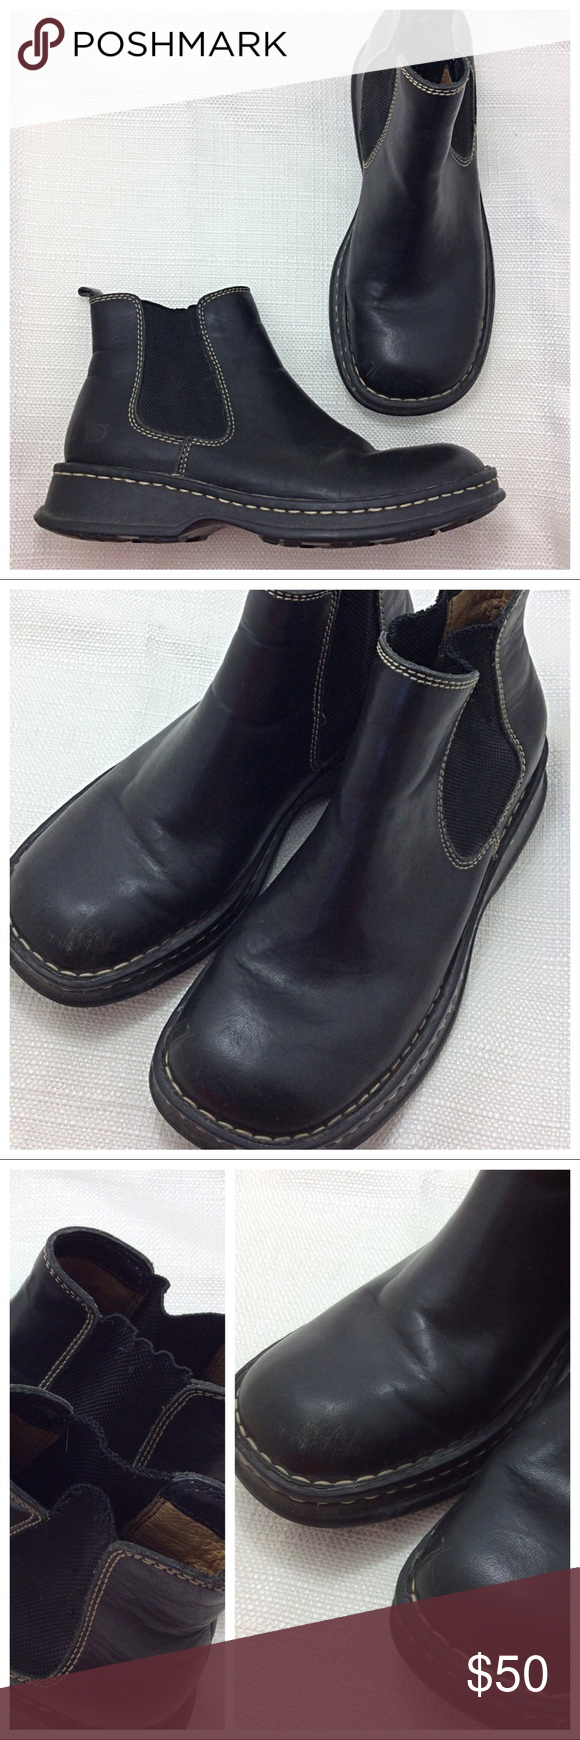 6f0298997df Born Pull-on Ankle Boot Super soft black leather with wide toe box. Pull-on  design with wide elastic stretch. Minor signs of wear on toe and elastic